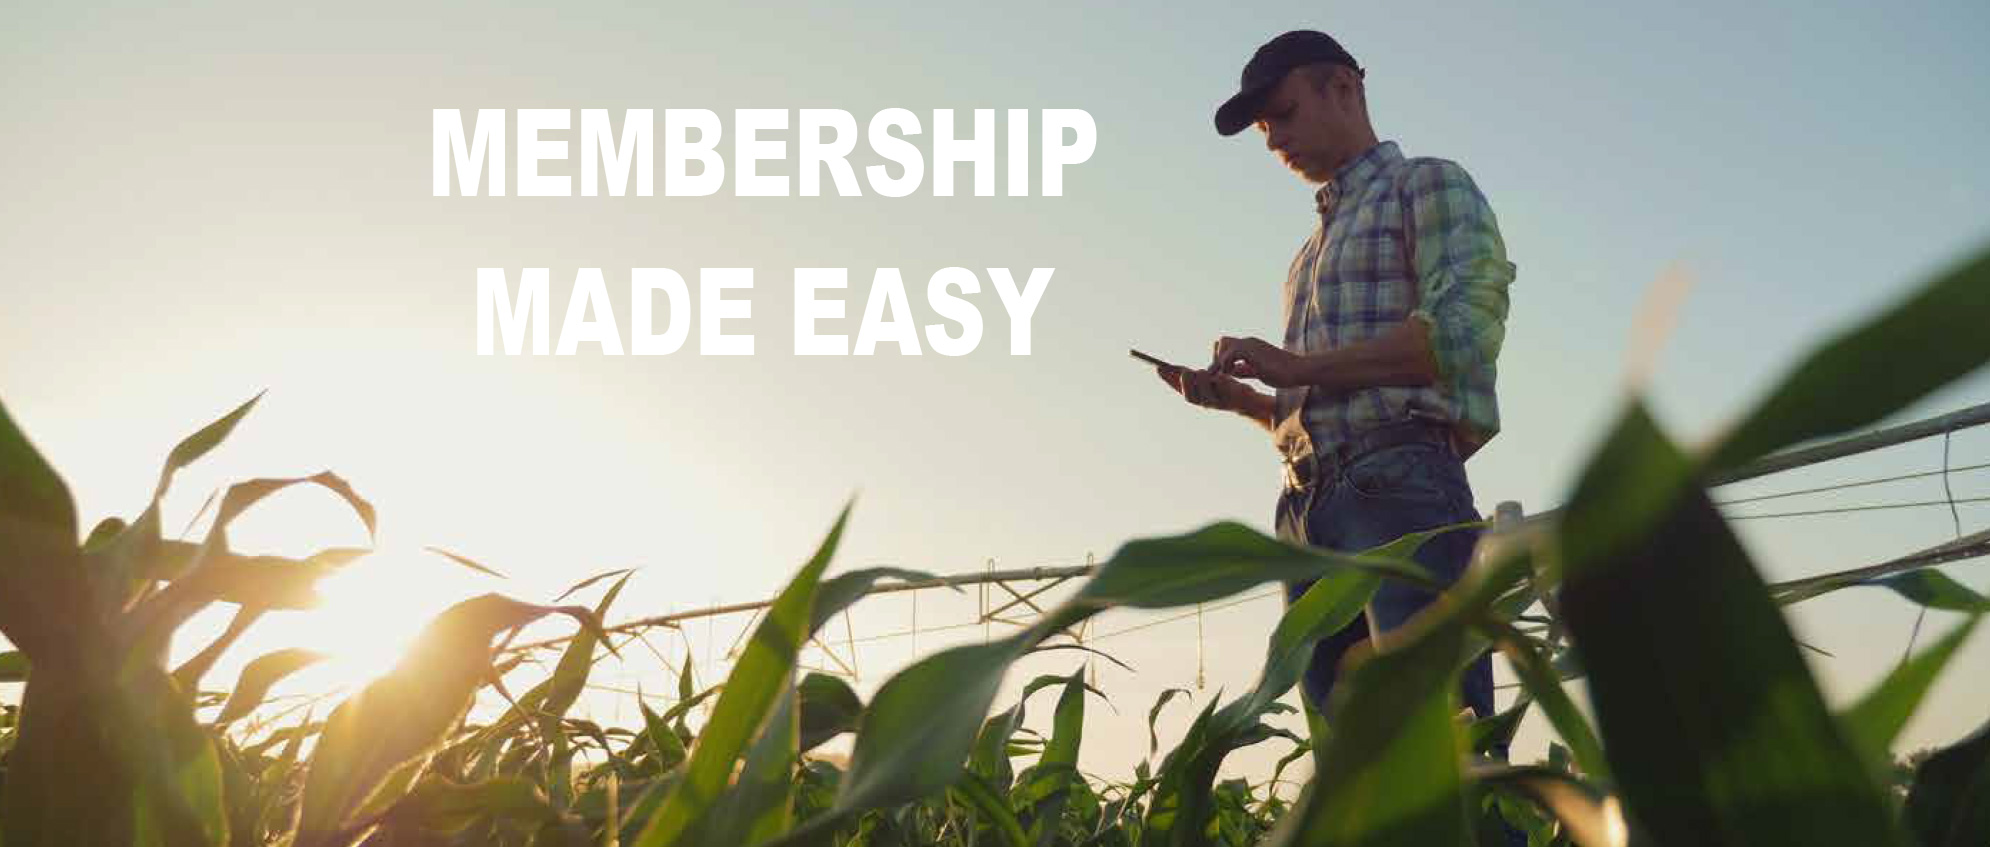 membership-made-easy